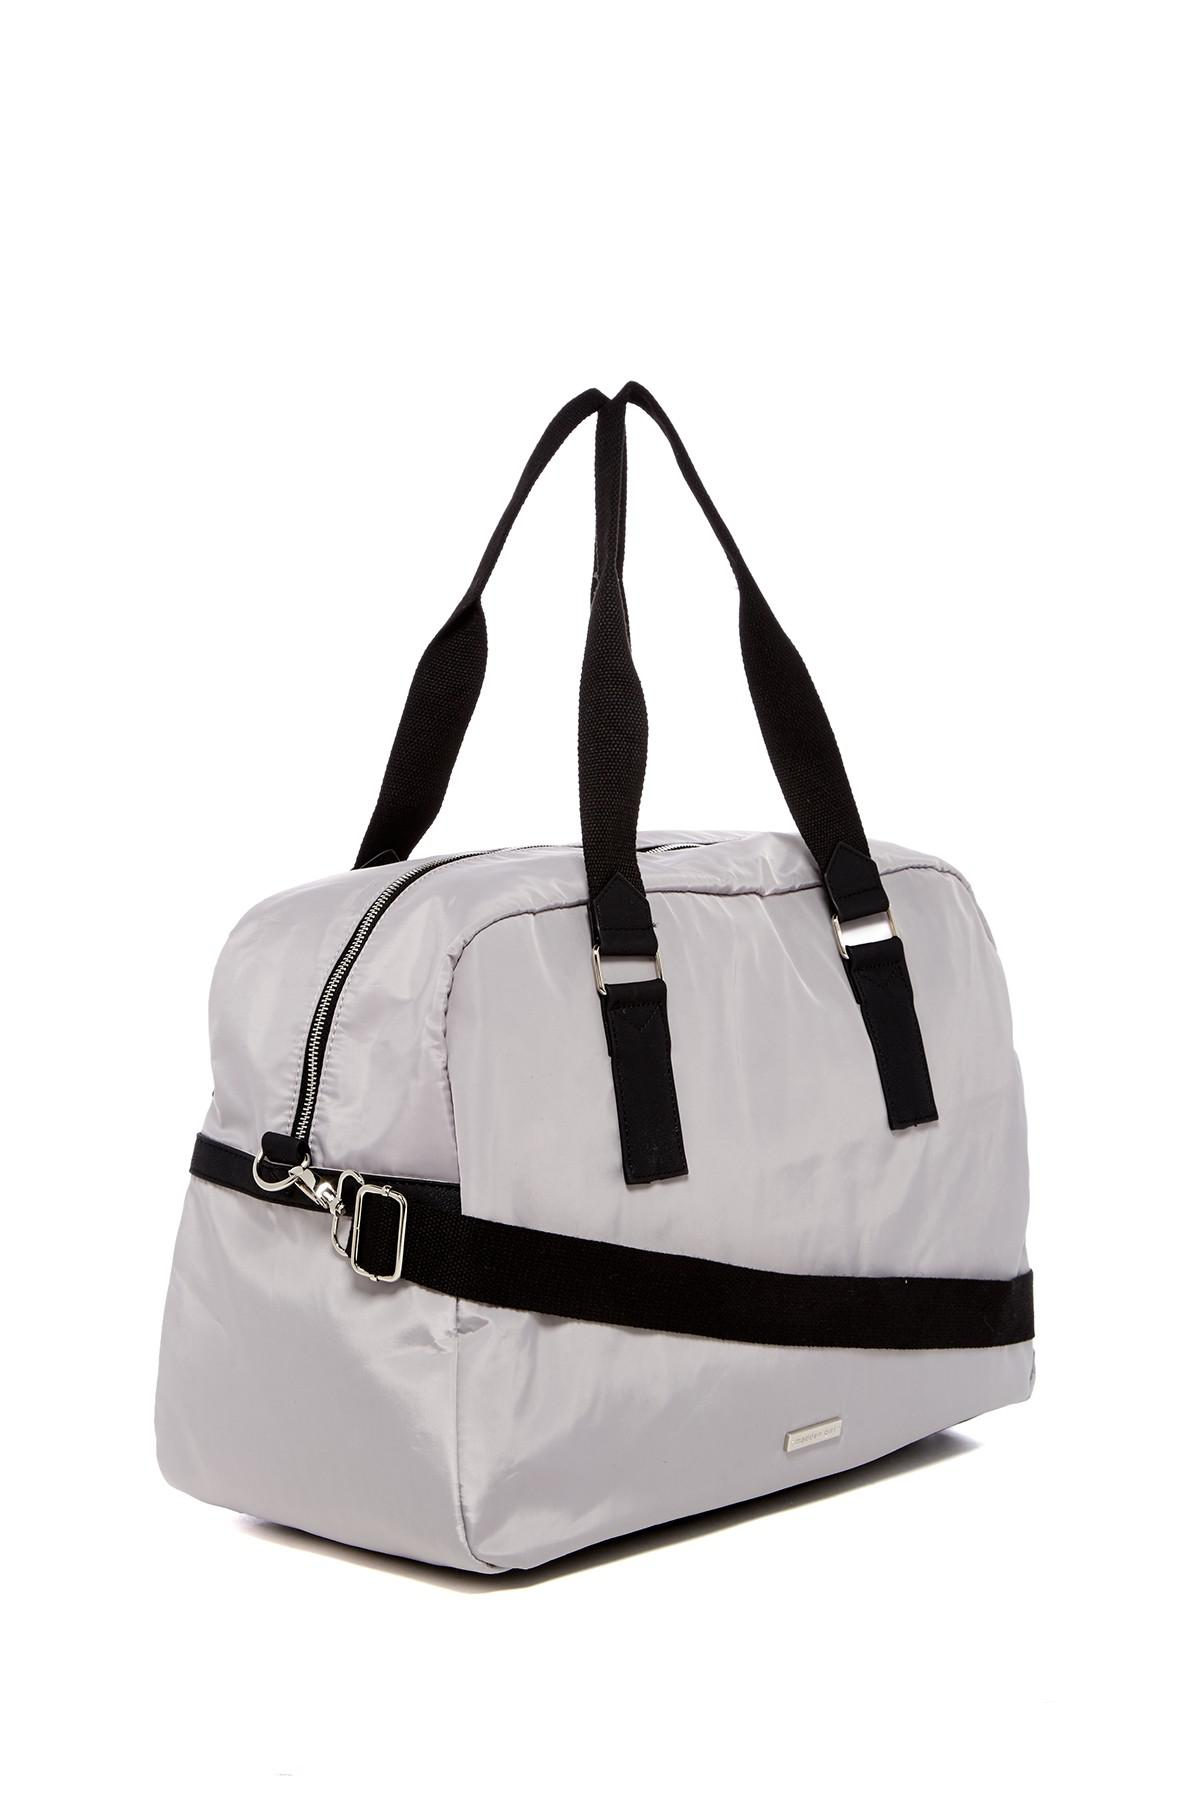 0a4f47c5f213 Lyst - Madden Girl Junior Nylon Weekend Bag in Gray